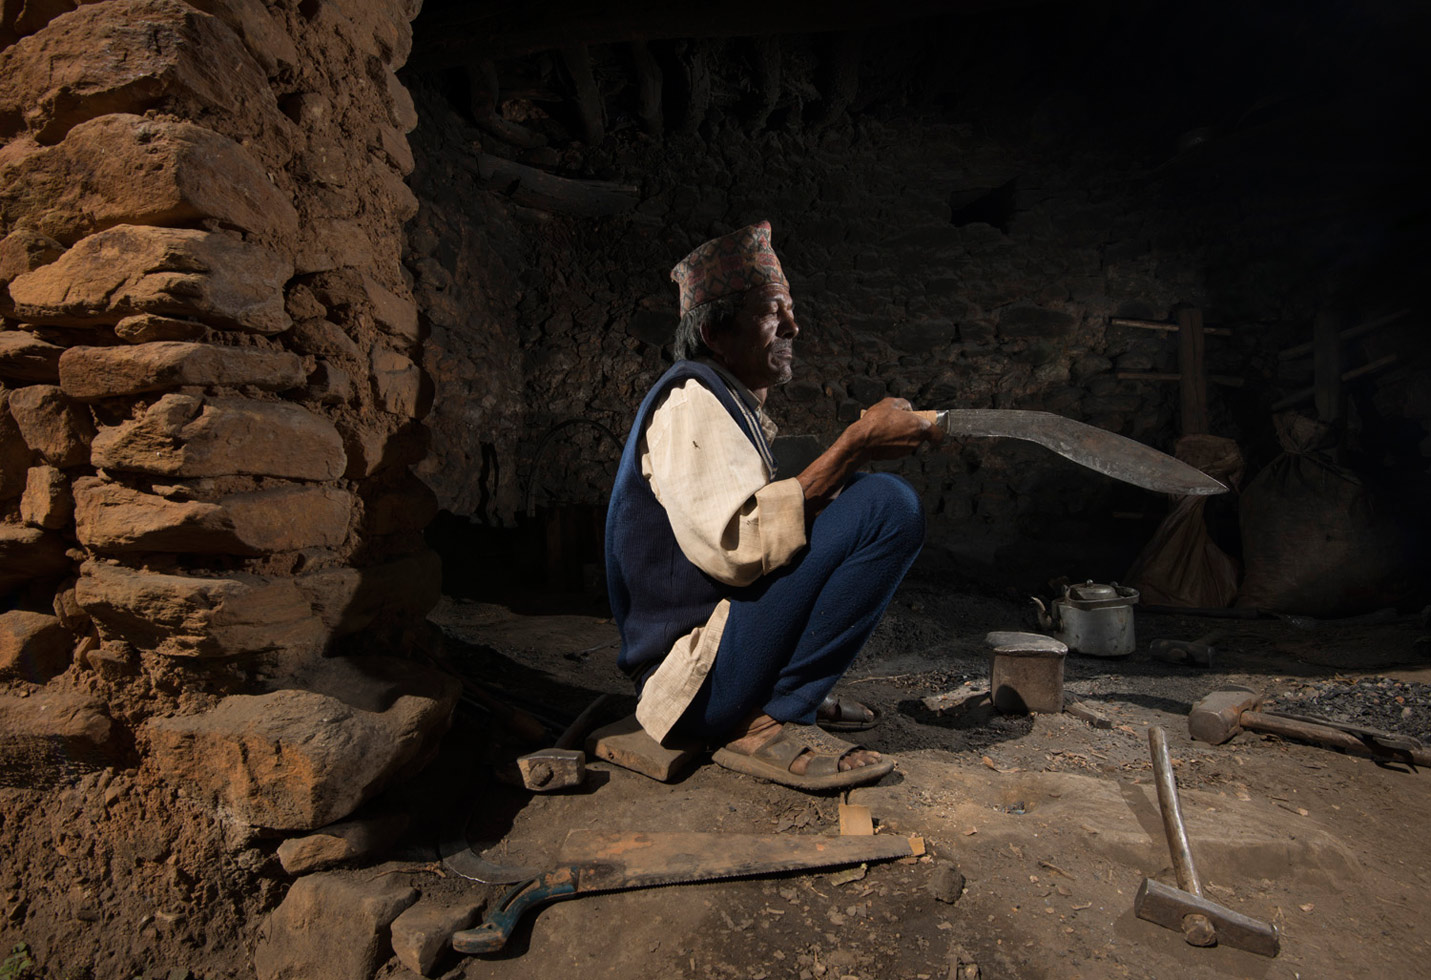 """Falante, Nepal, 2012 """"Man Bahadur is a 4th generation blacksmith and part of the Nepalese Kami caste. He made this khukuri for me over the course of 3 days."""""""